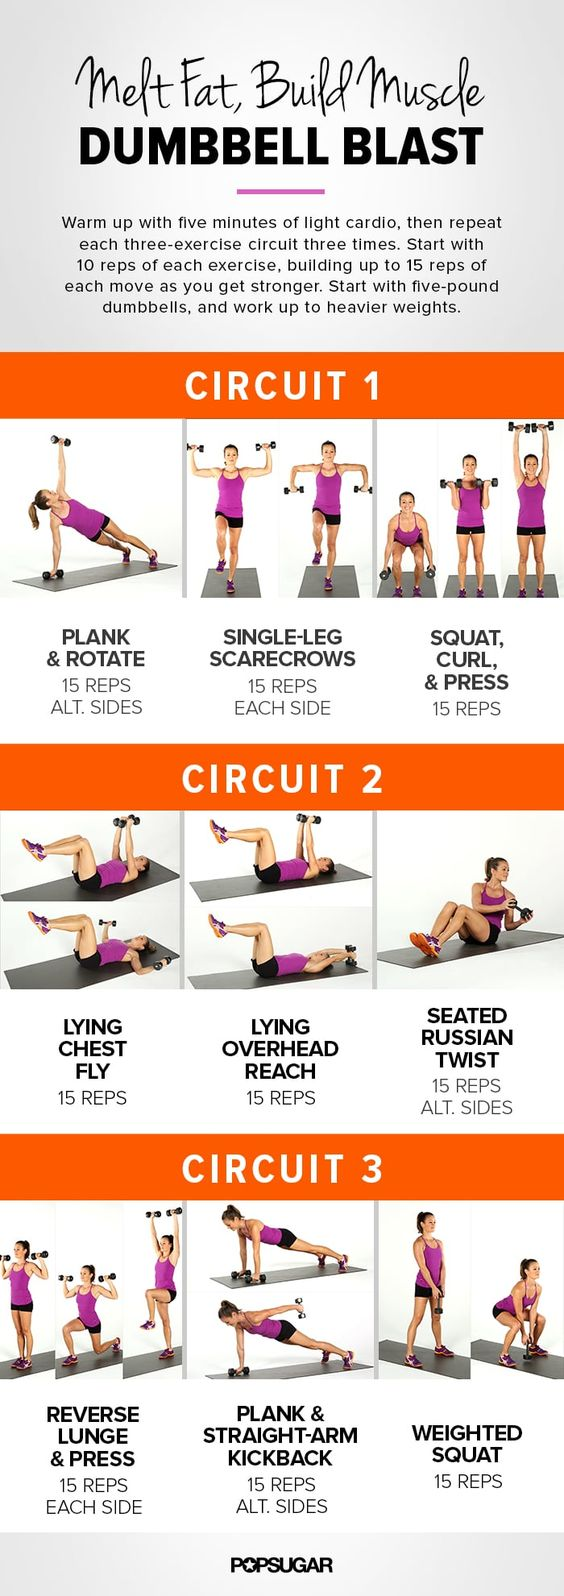 Melt Fat and Build Muscle by Dumbbell Blast